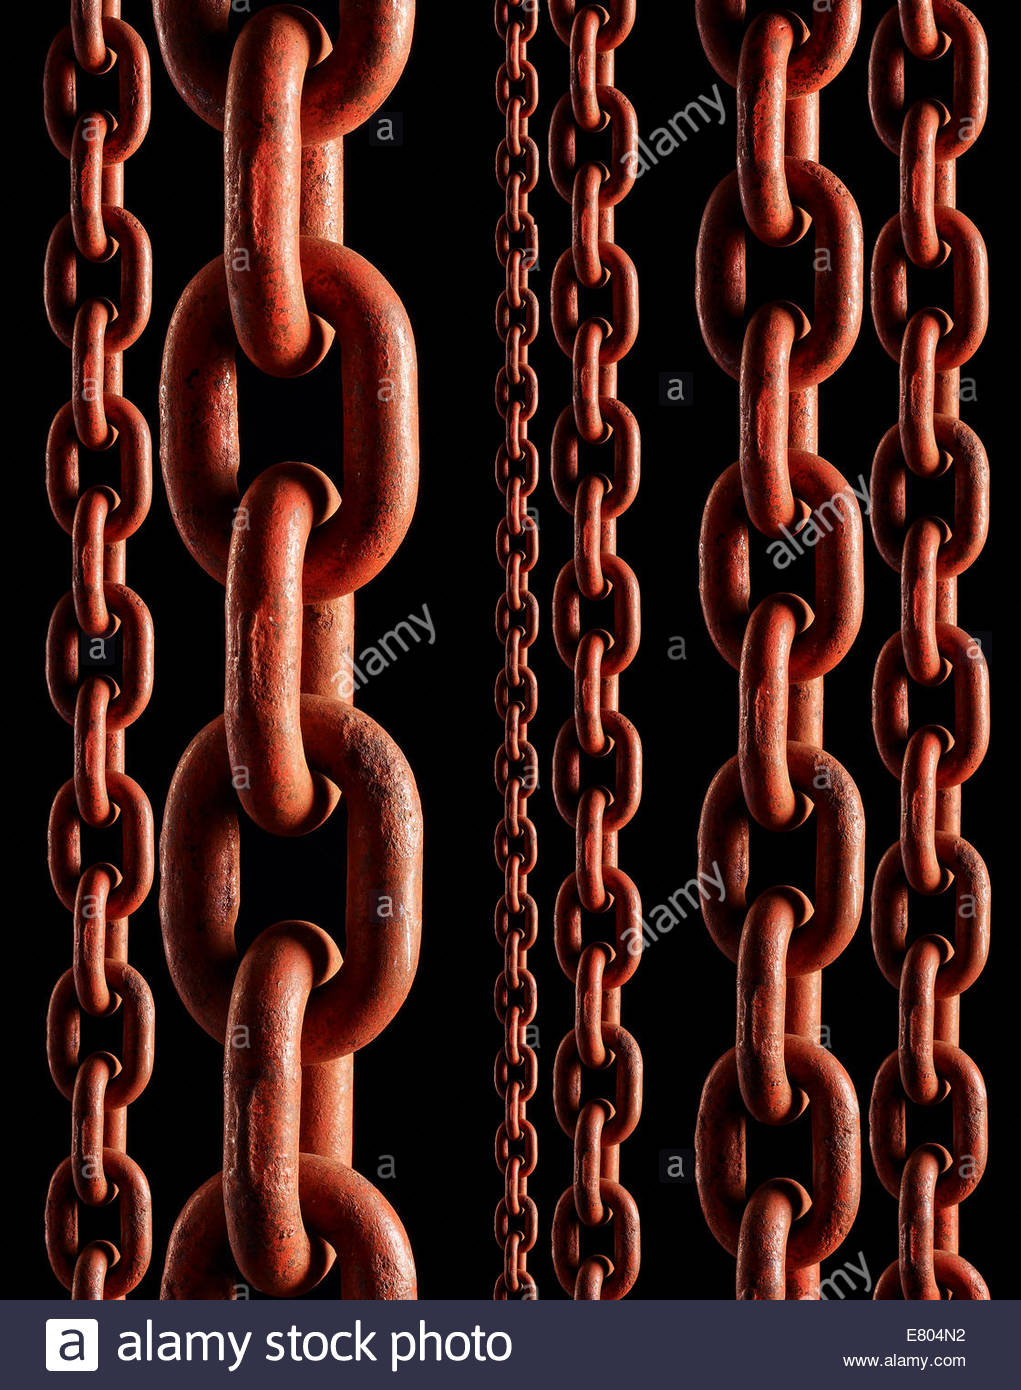 RED INDUSTRIAL heavy strength chain - Stock Image